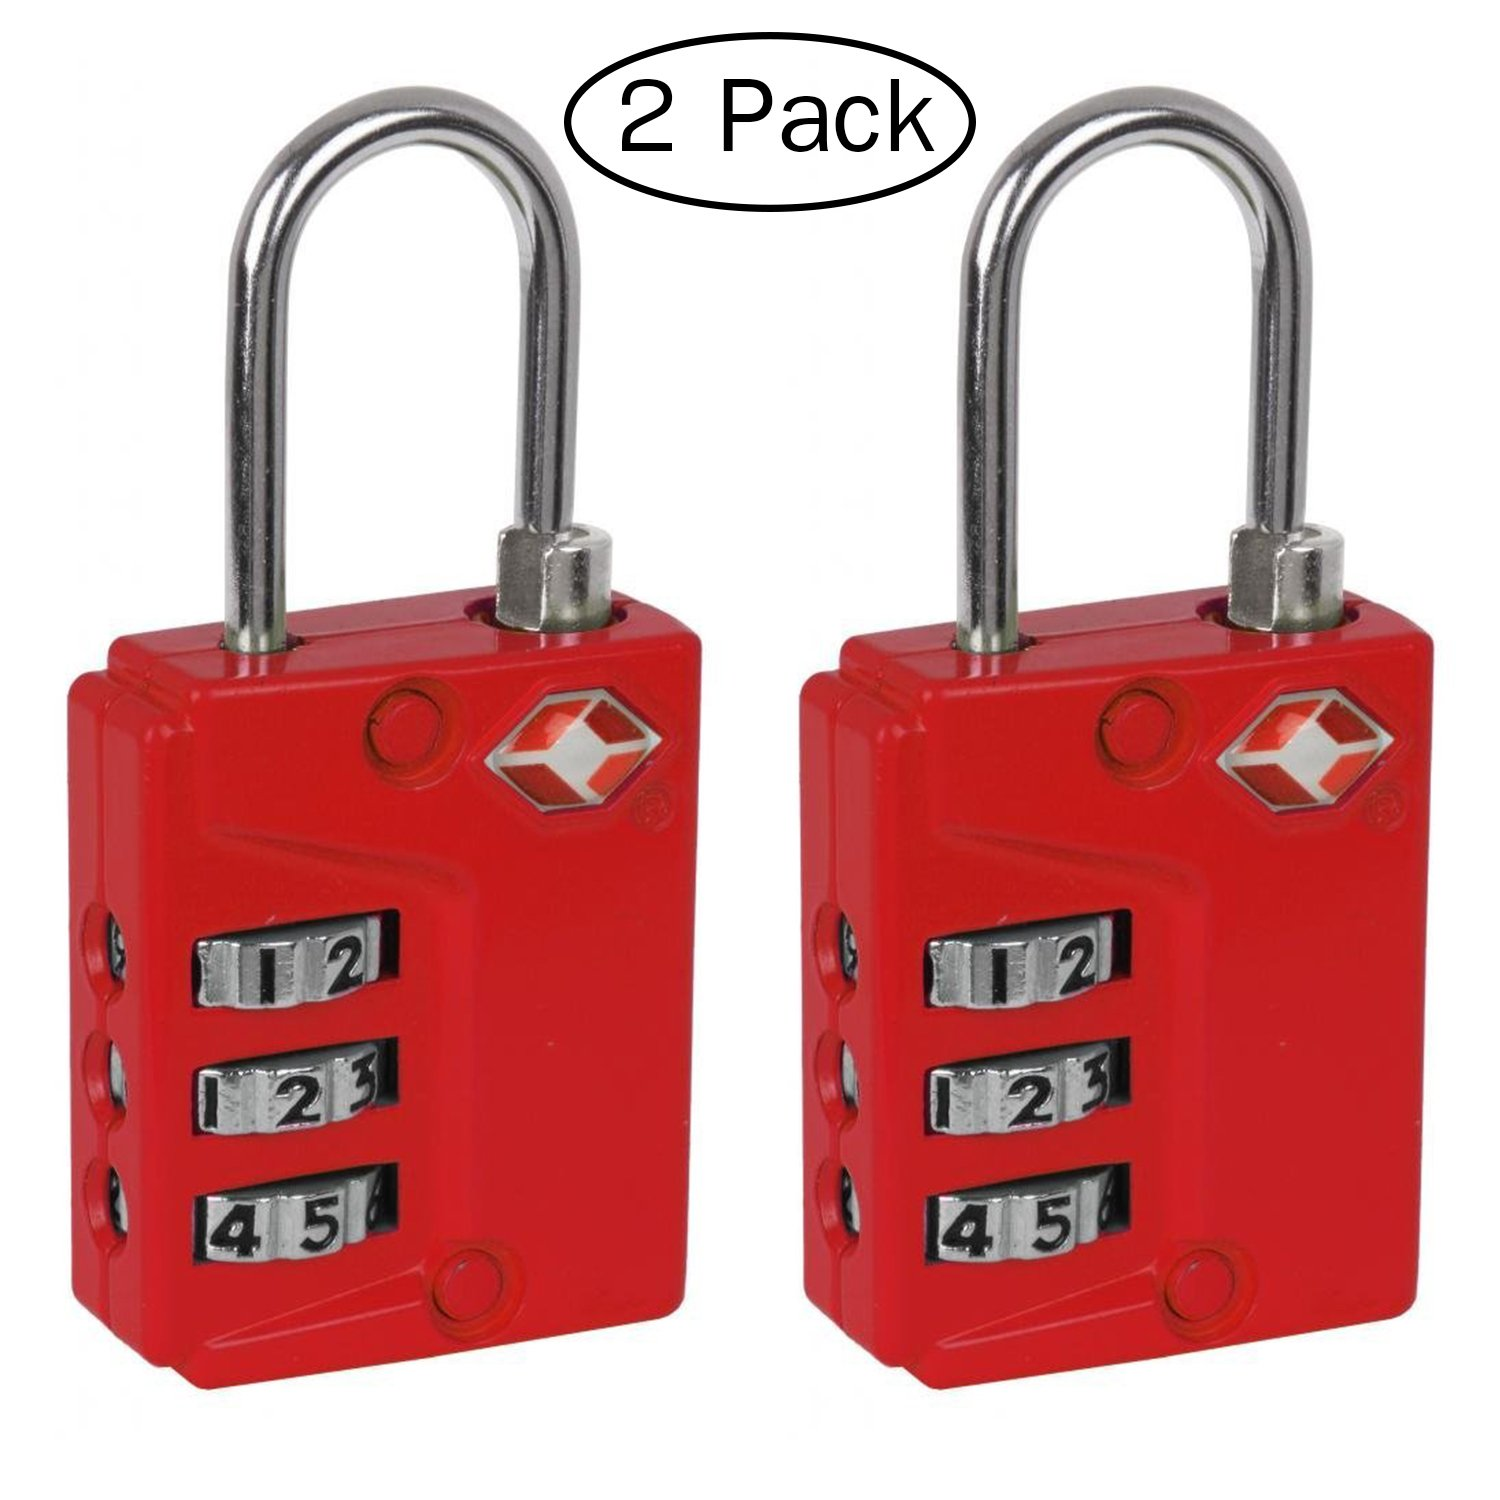 Ivation Luggage lock, Three Dial TSA Approved Combination, great for Personal Bags, Luggage's, Totes, Suitcases, Duffle bags, Gym Lockers, with Instant Alert Red Tab Indicator If opened By TSA, 2 Pack